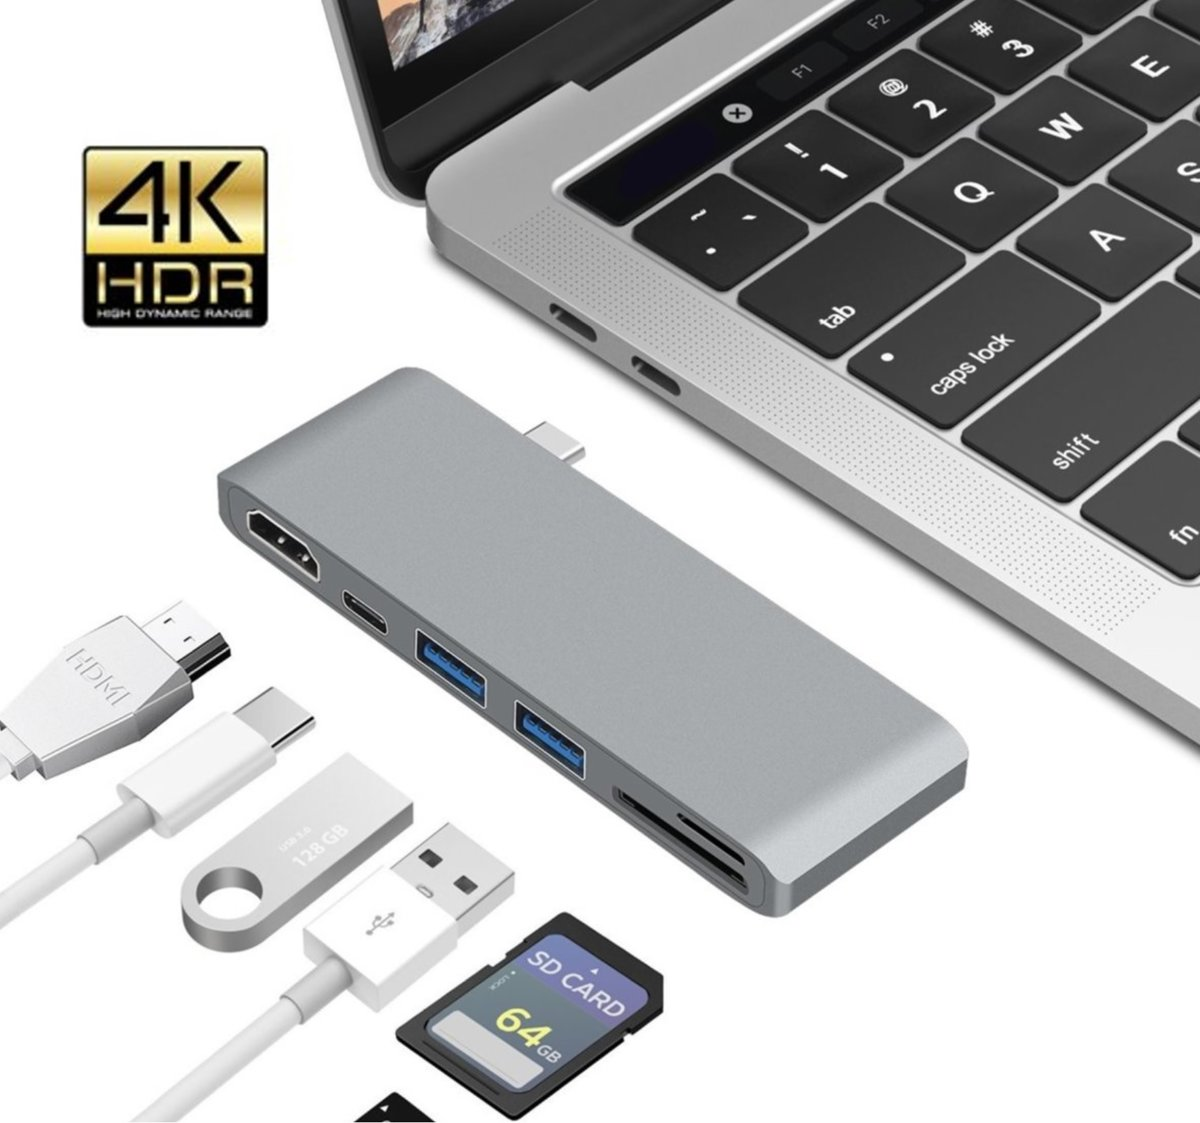 6 in 1 USB C - Type-C   naar HDMI Adapter 4K + 2x USB 3.0 Poort + USB C PD (power delivery) + Micro SD / SD Kaartlezer - USB 3.0   - Voor Macbook Pro / Nintendo Switch / Asus Zenbook / Lenovo Yoga / HP Specte / Surface Book Laptop - Space Grey